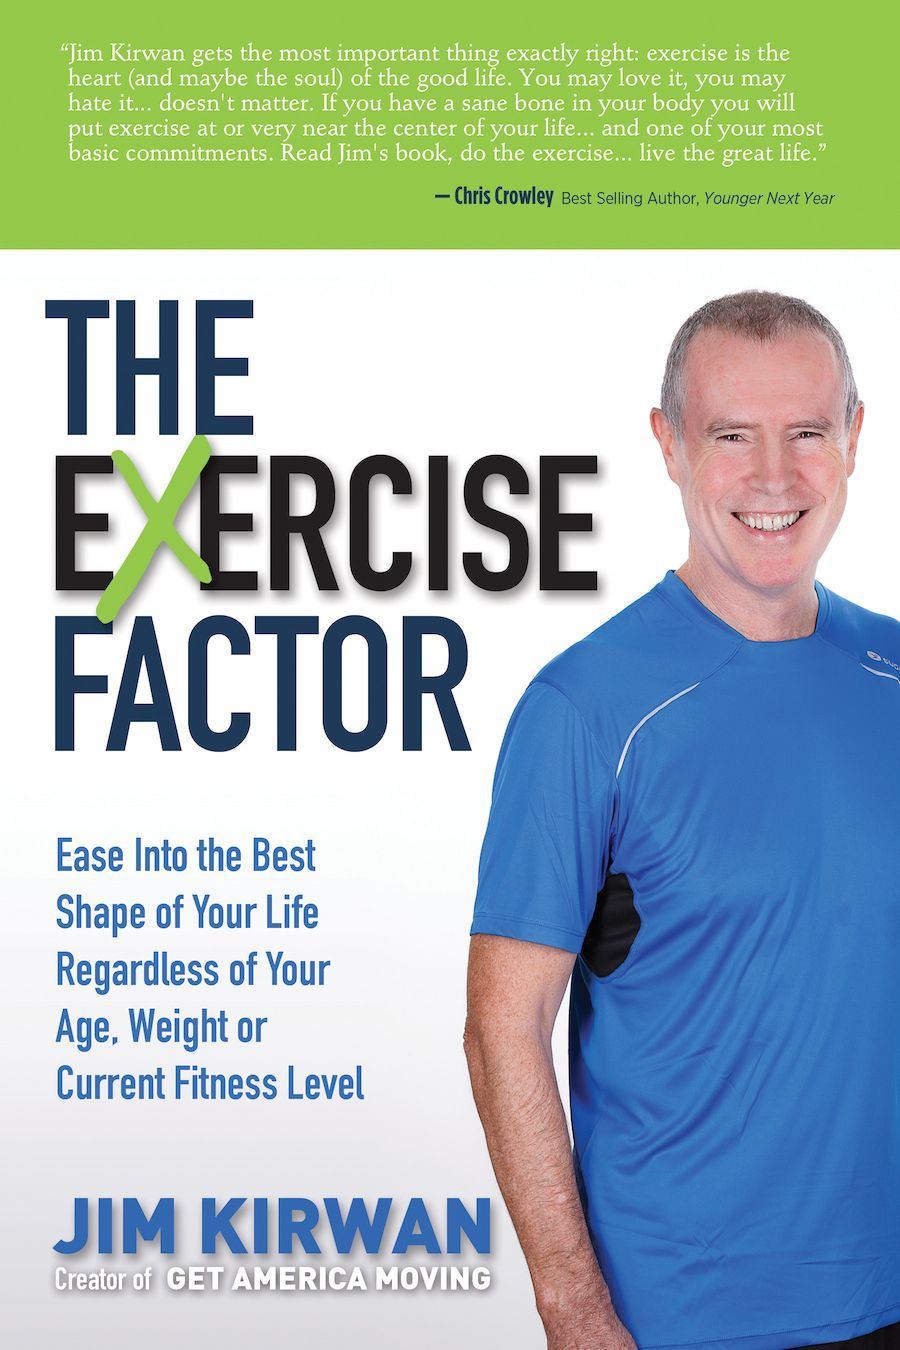 The Exercise Factor by Jim Kirwan